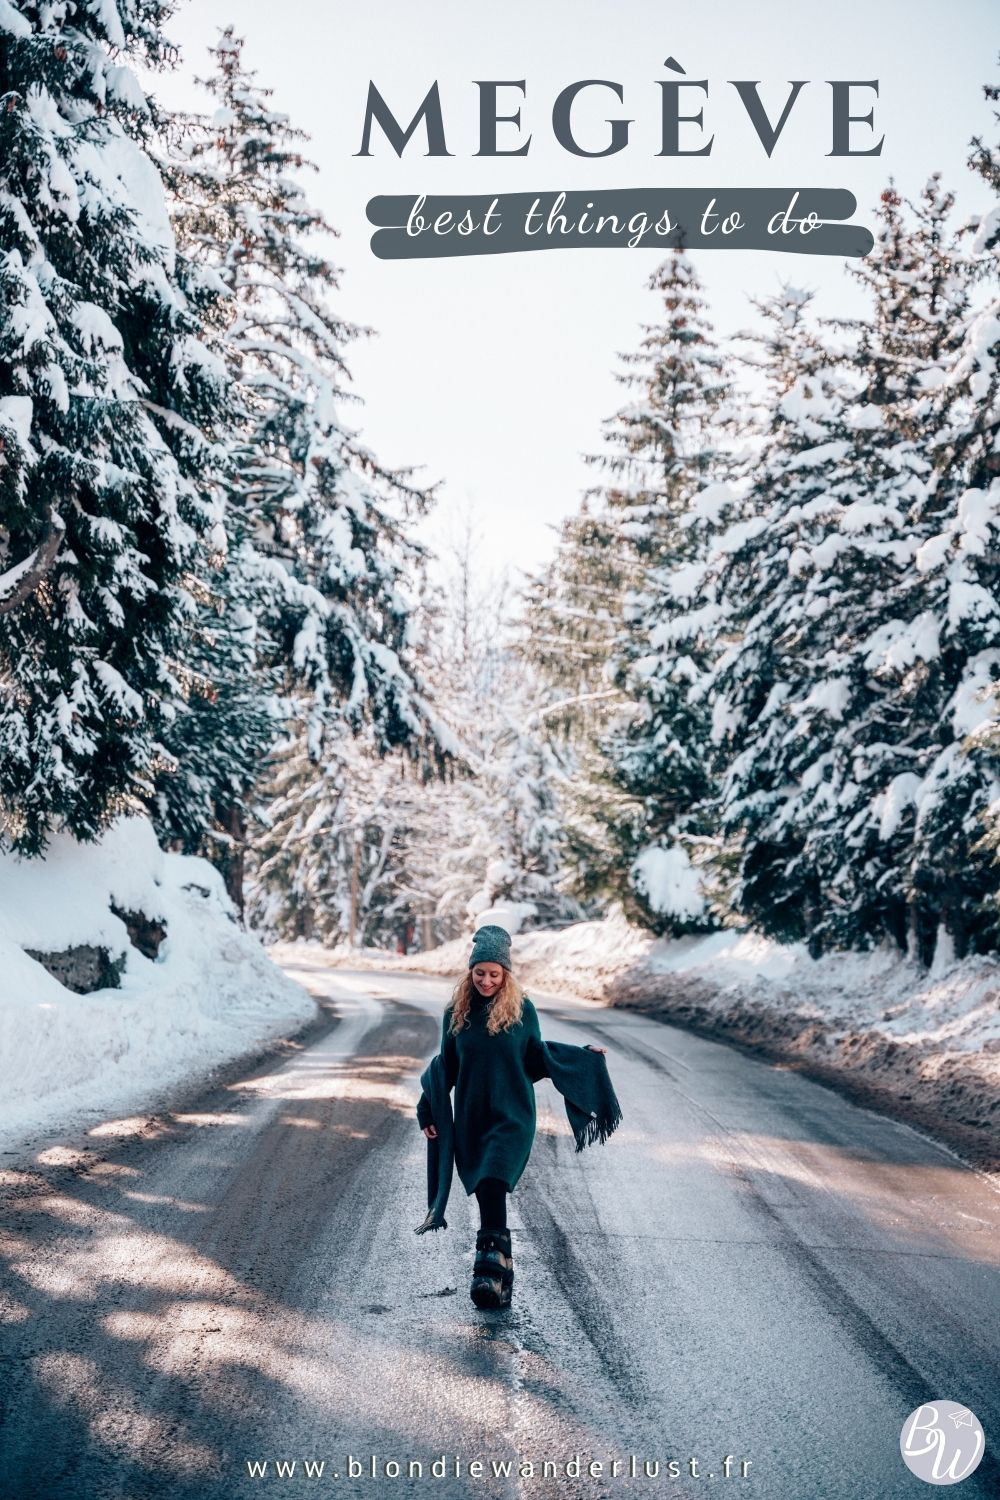 Best things to do in Megeve